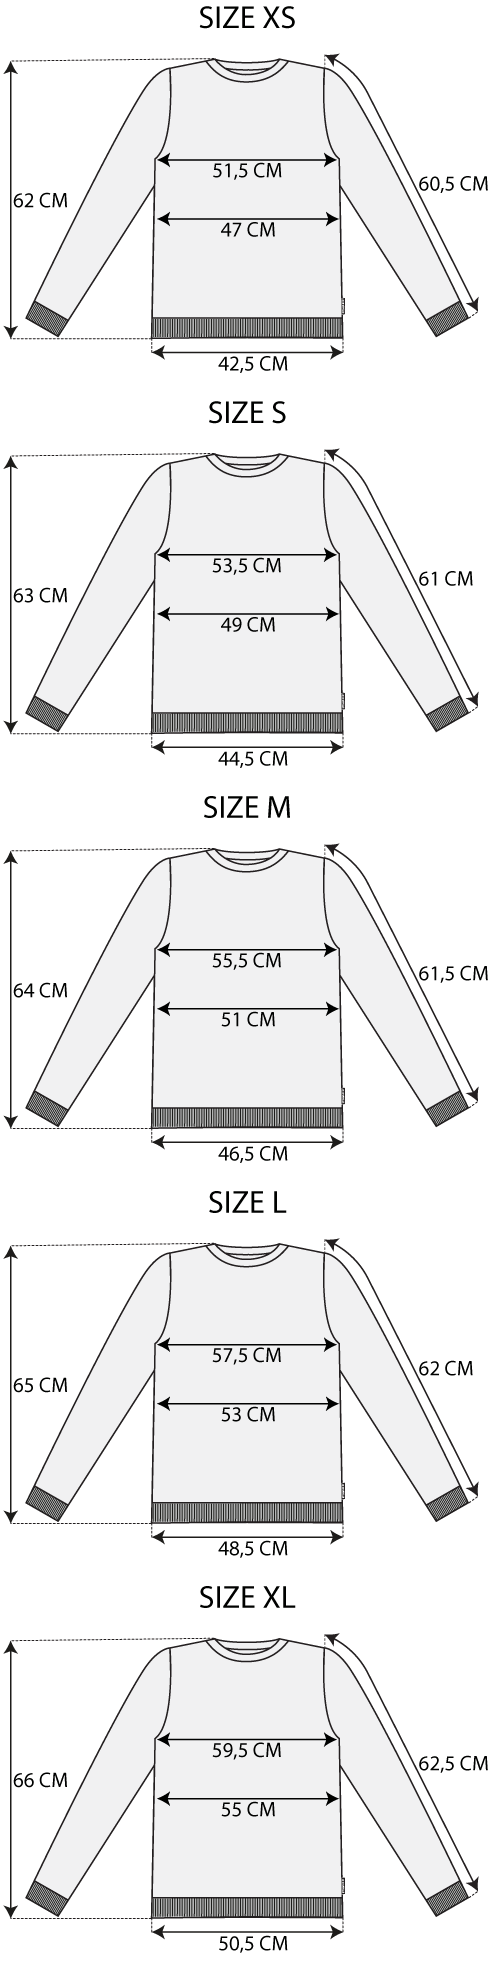 Maattabel sweater